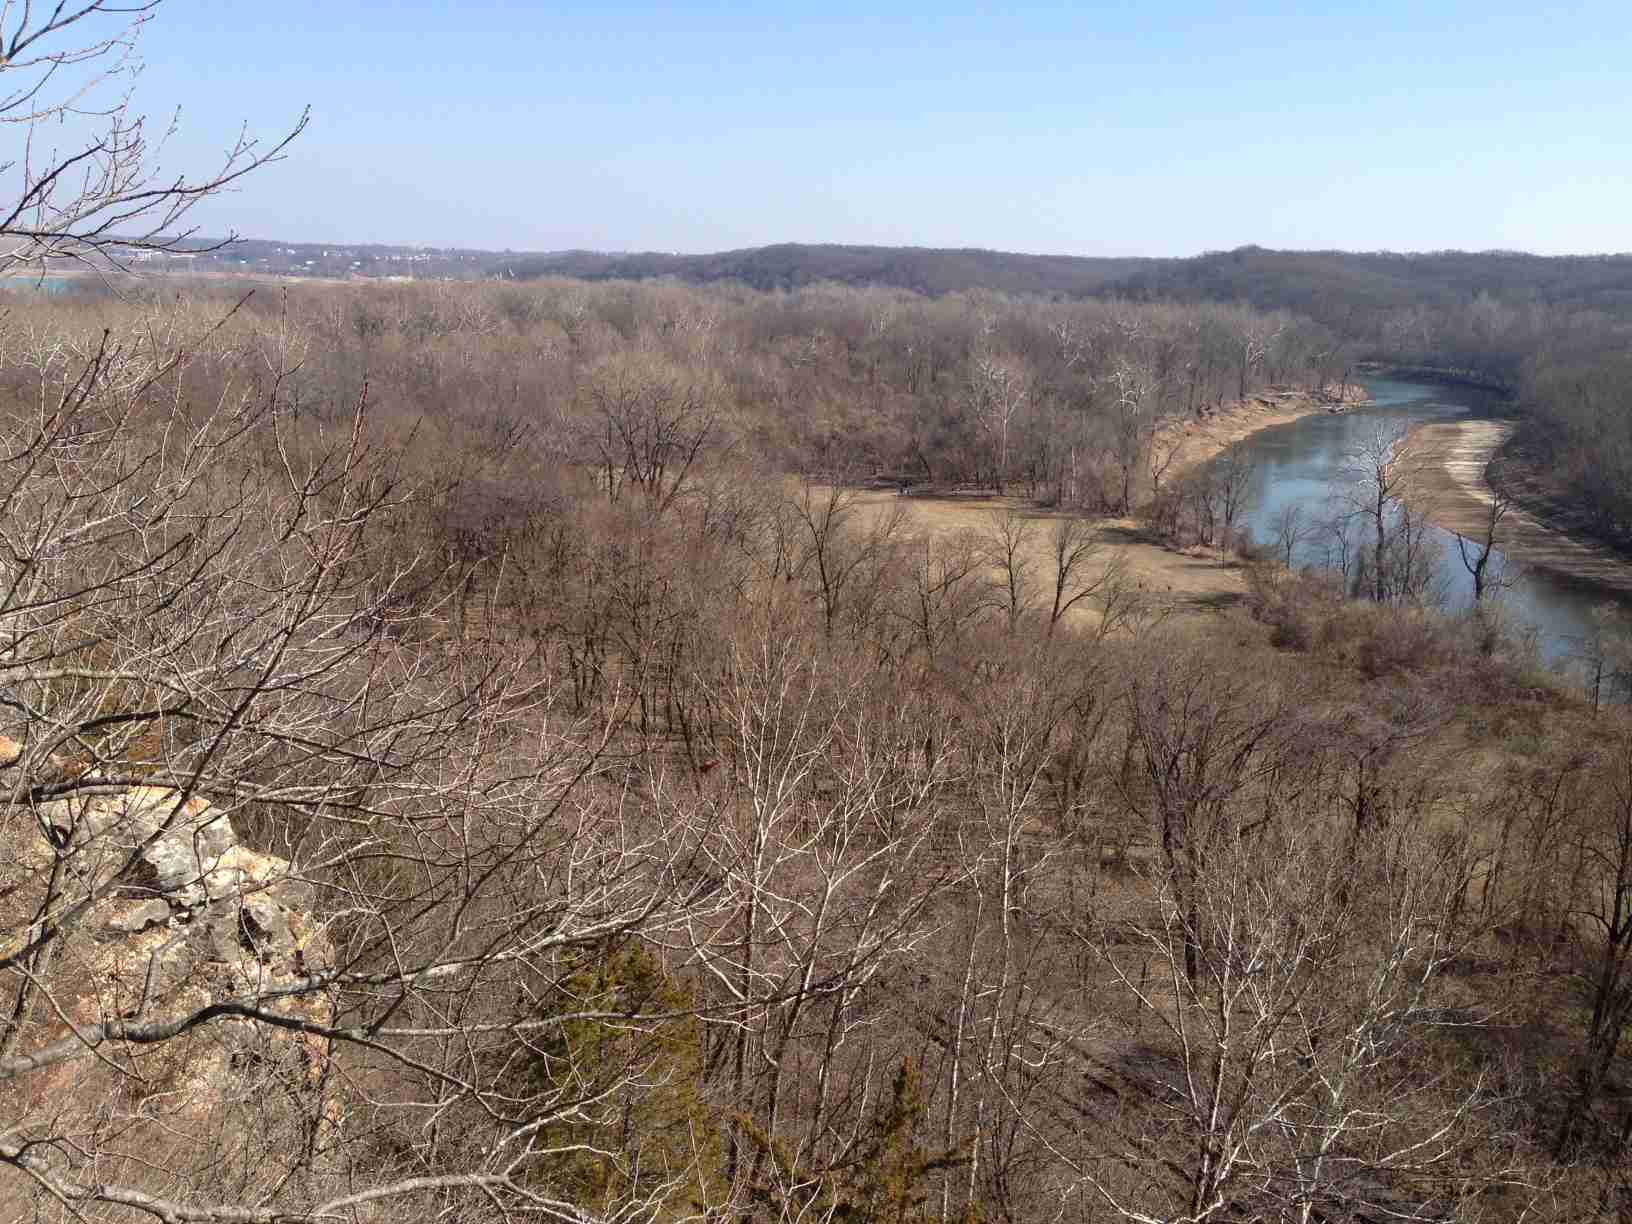 Castlewood State Park in Ballwin, MO